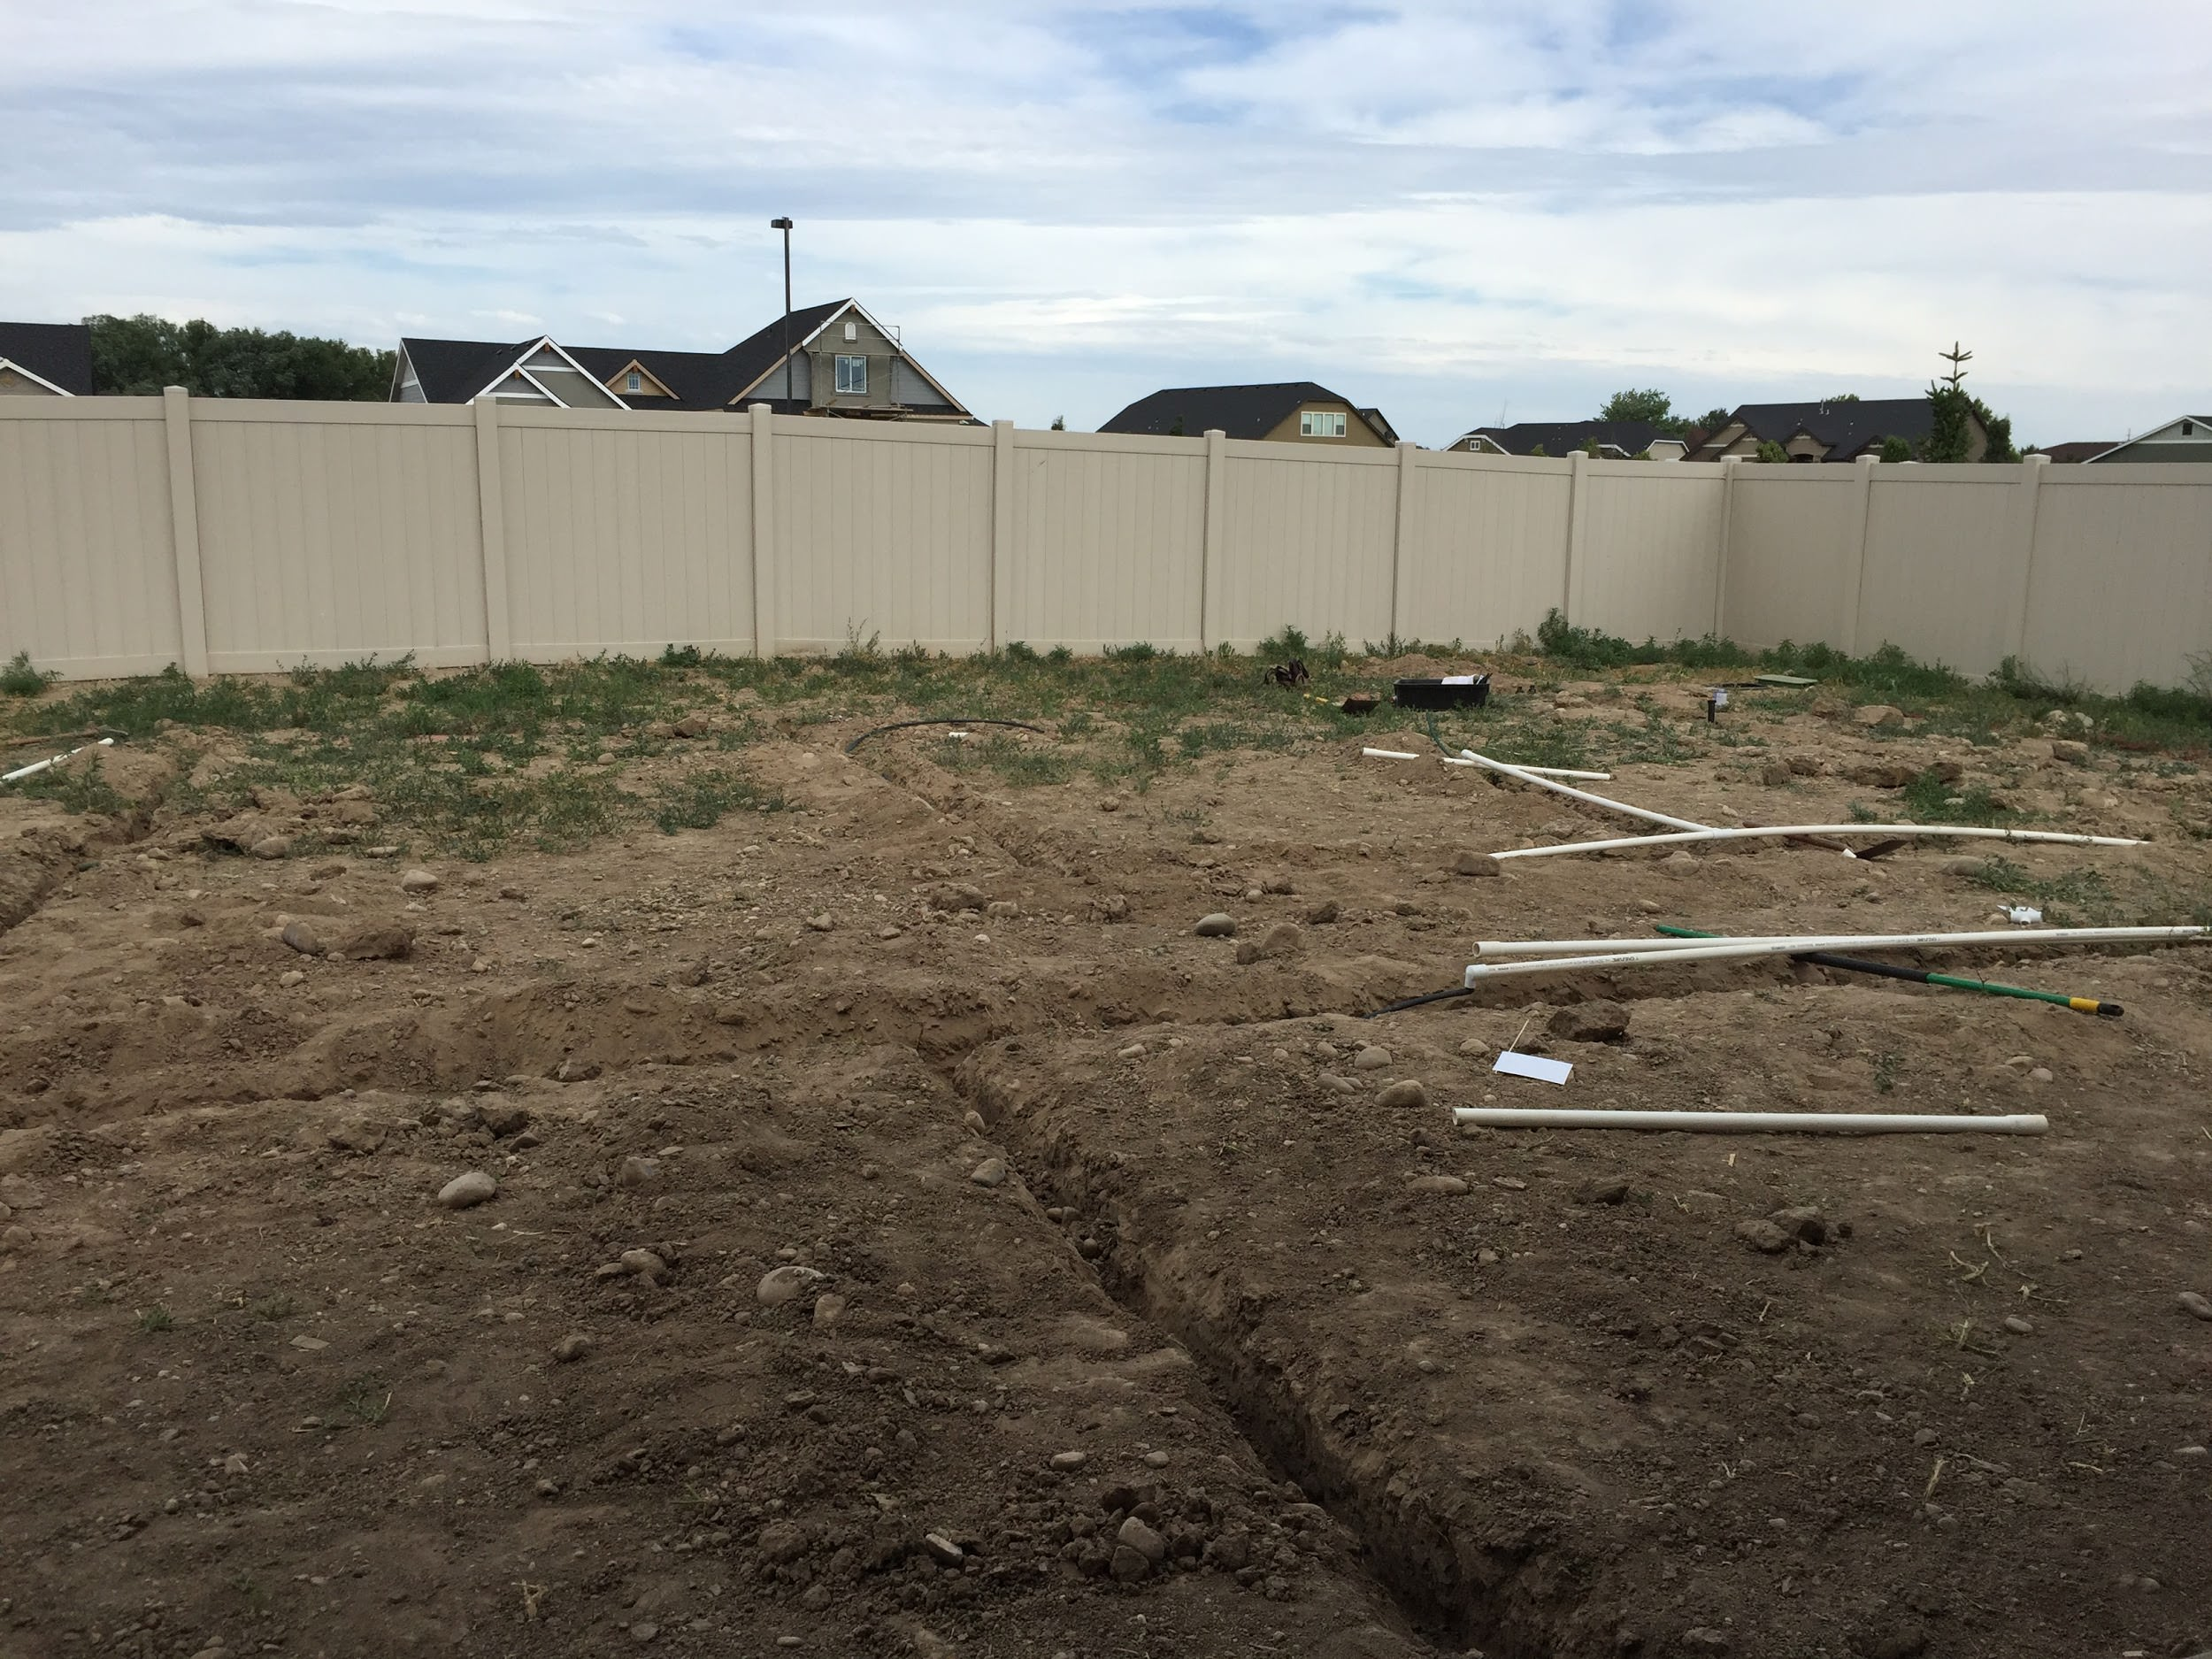 Preparing backyard to install DIY sprinkler system